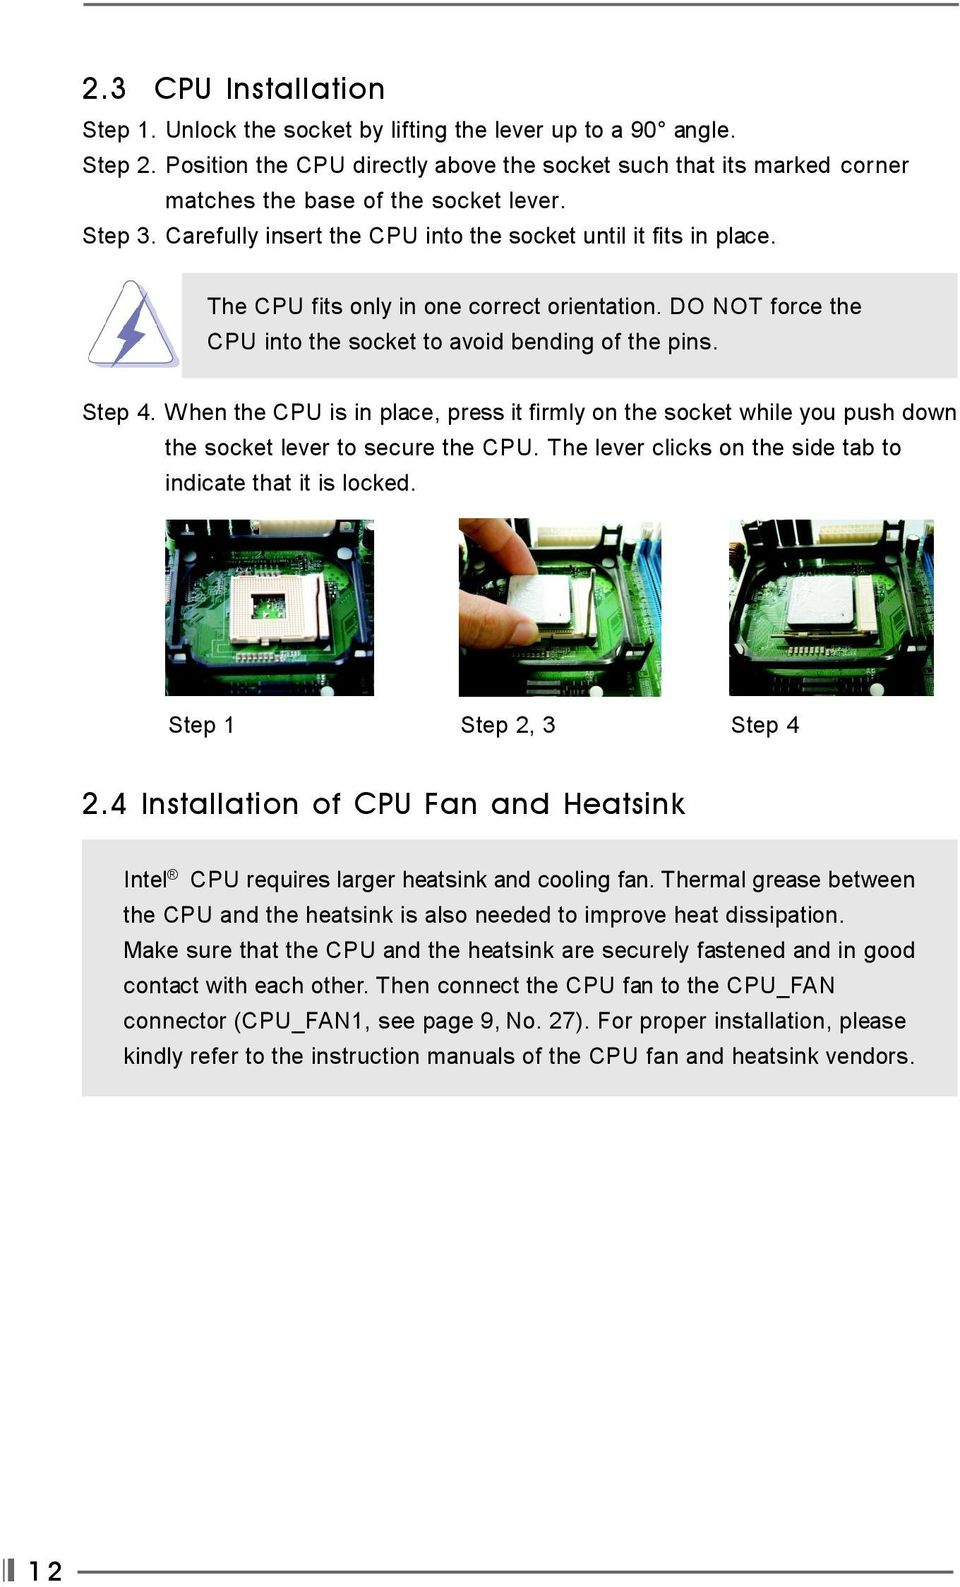 The CPU fits only in one correct orientation. DO NOT force the CPU into the socket to avoid bending of the pins. Step 4.